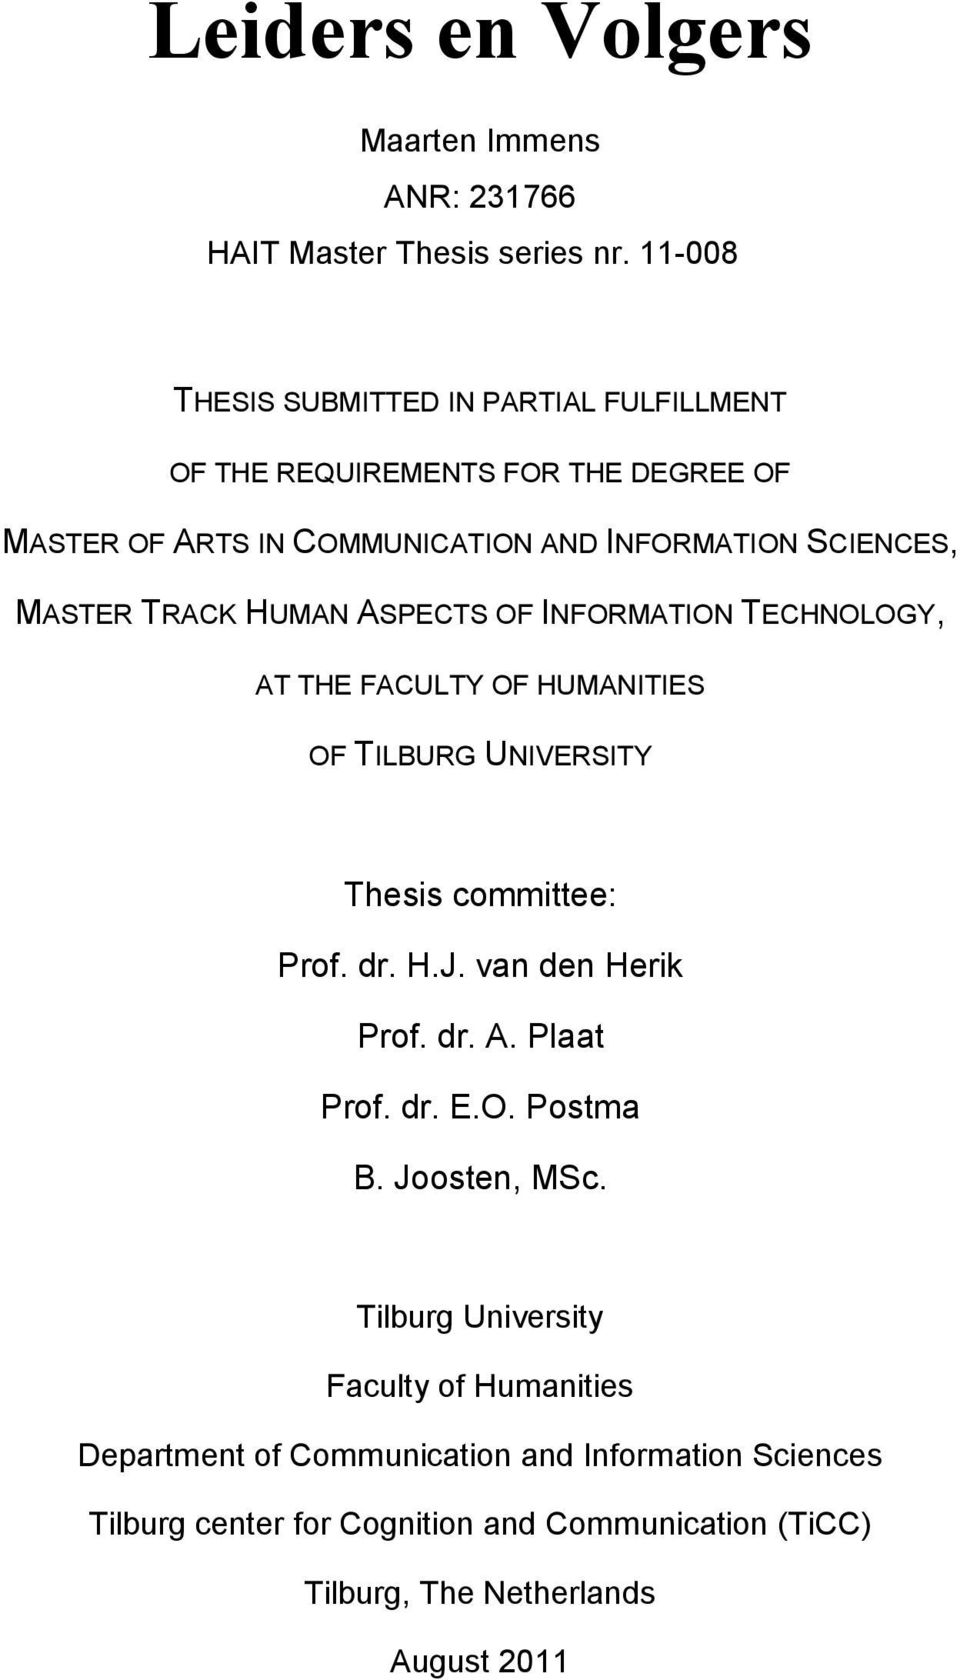 TRACK HUMAN ASPECTS OF INFORMATION TECHNOLOGY, AT THE FACULTY OF HUMANITIES OF TILBURG UNIVERSITY Thesis committee: Prof. dr. H.J. van den Herik Prof. dr. A. Plaat Prof.